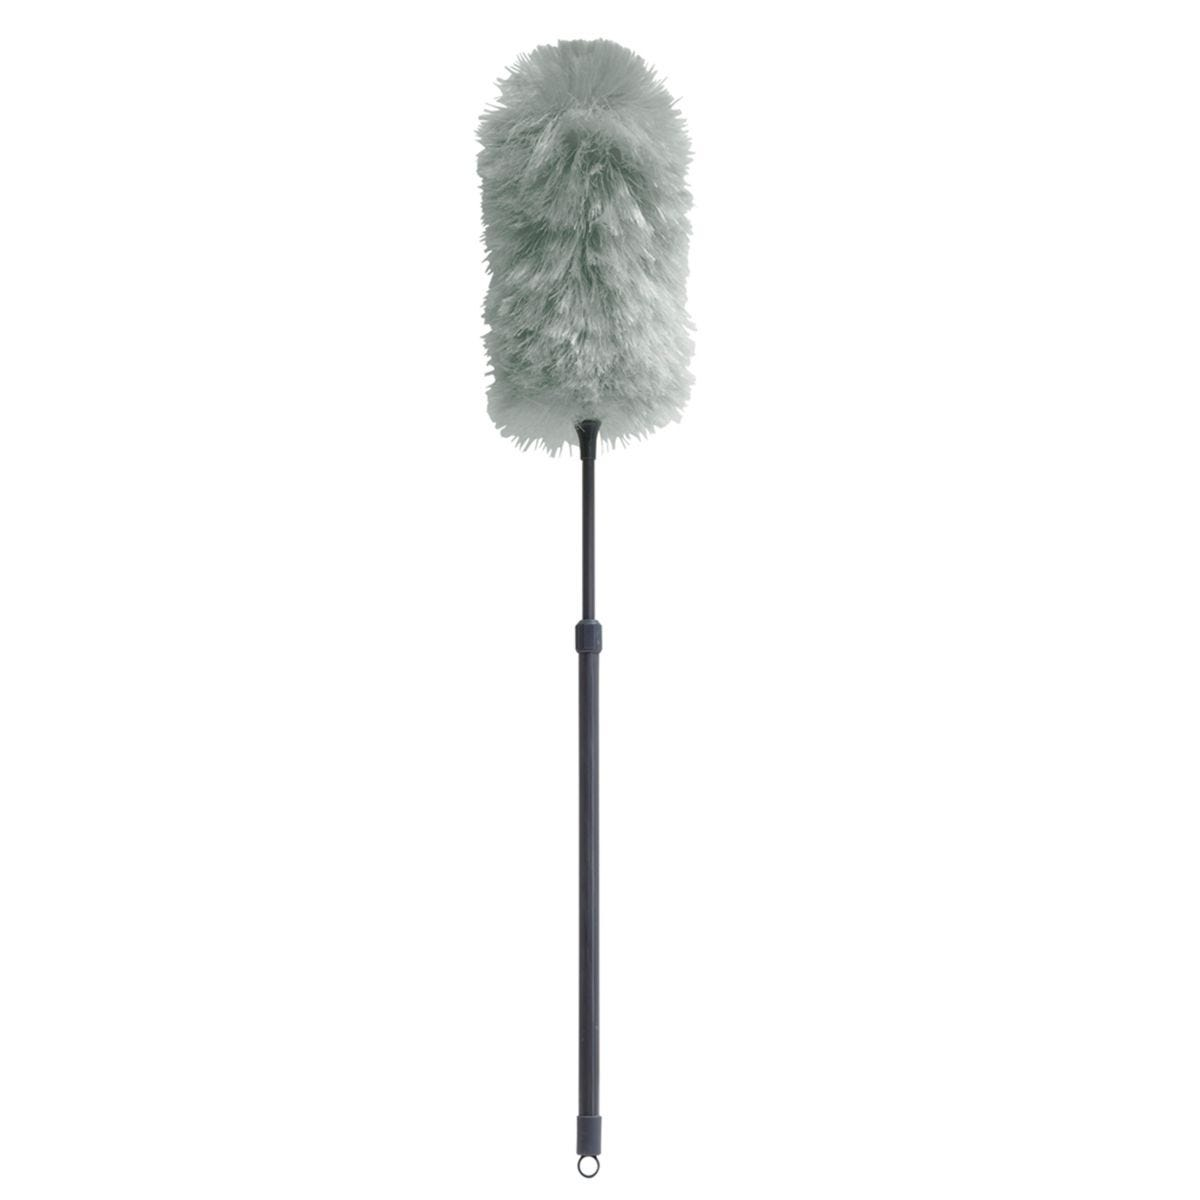 JVL Synthetic Static Duster with Extendable Pole Grey/Turquoise